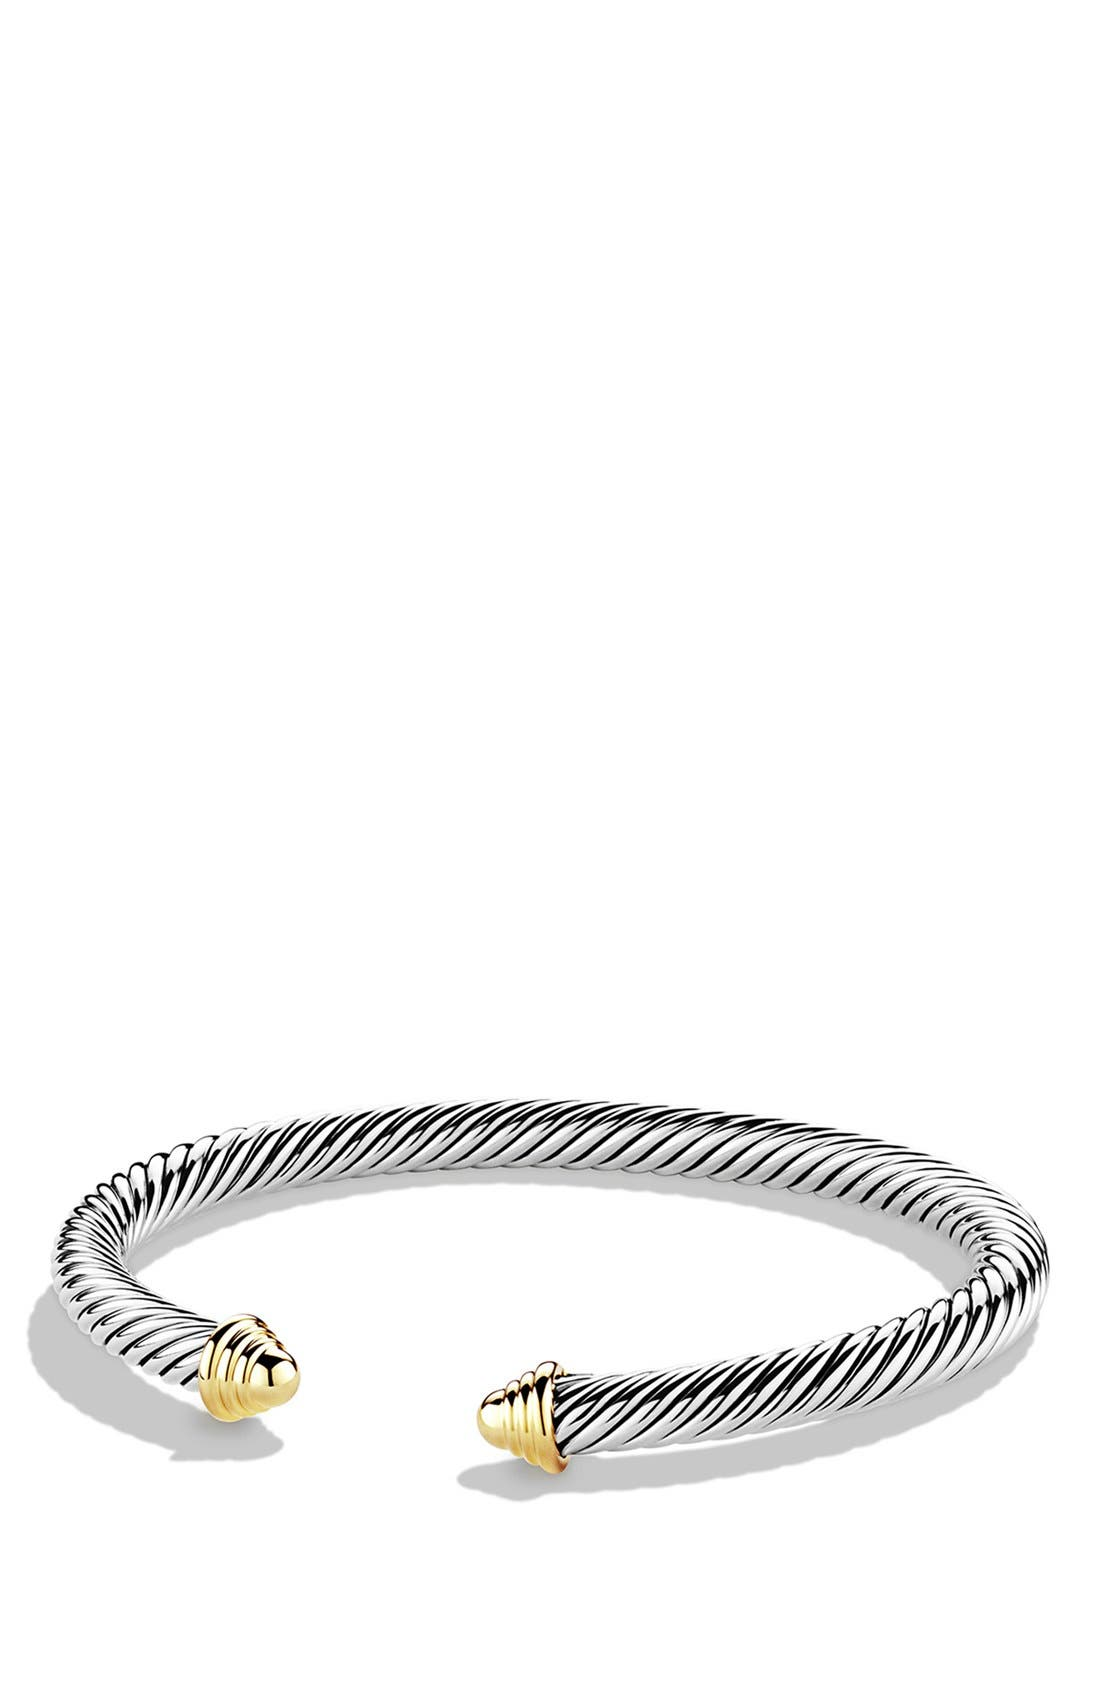 Main Image - David Yurman Cable Classics Bracelet with 14K Gold, 5mm